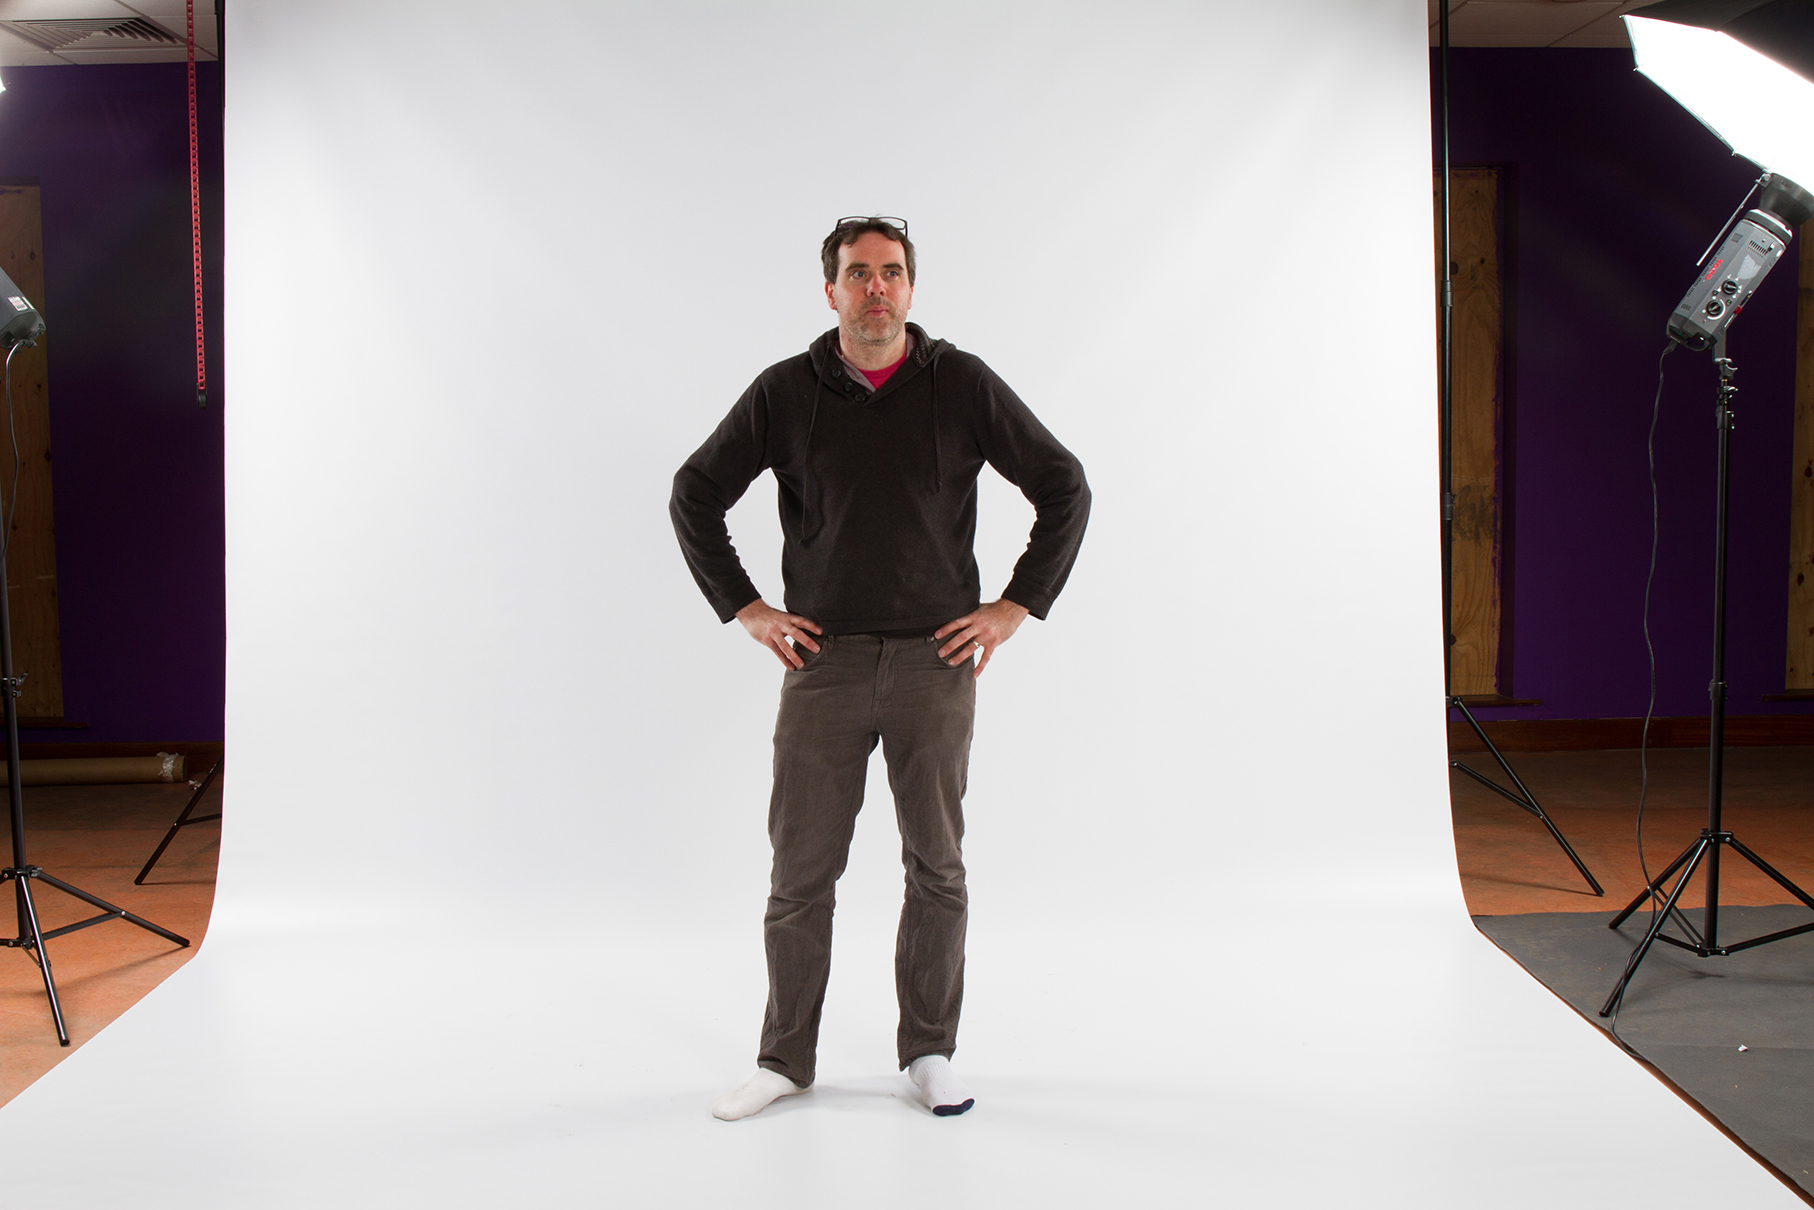 Here's me standing on the white screen for a test shot